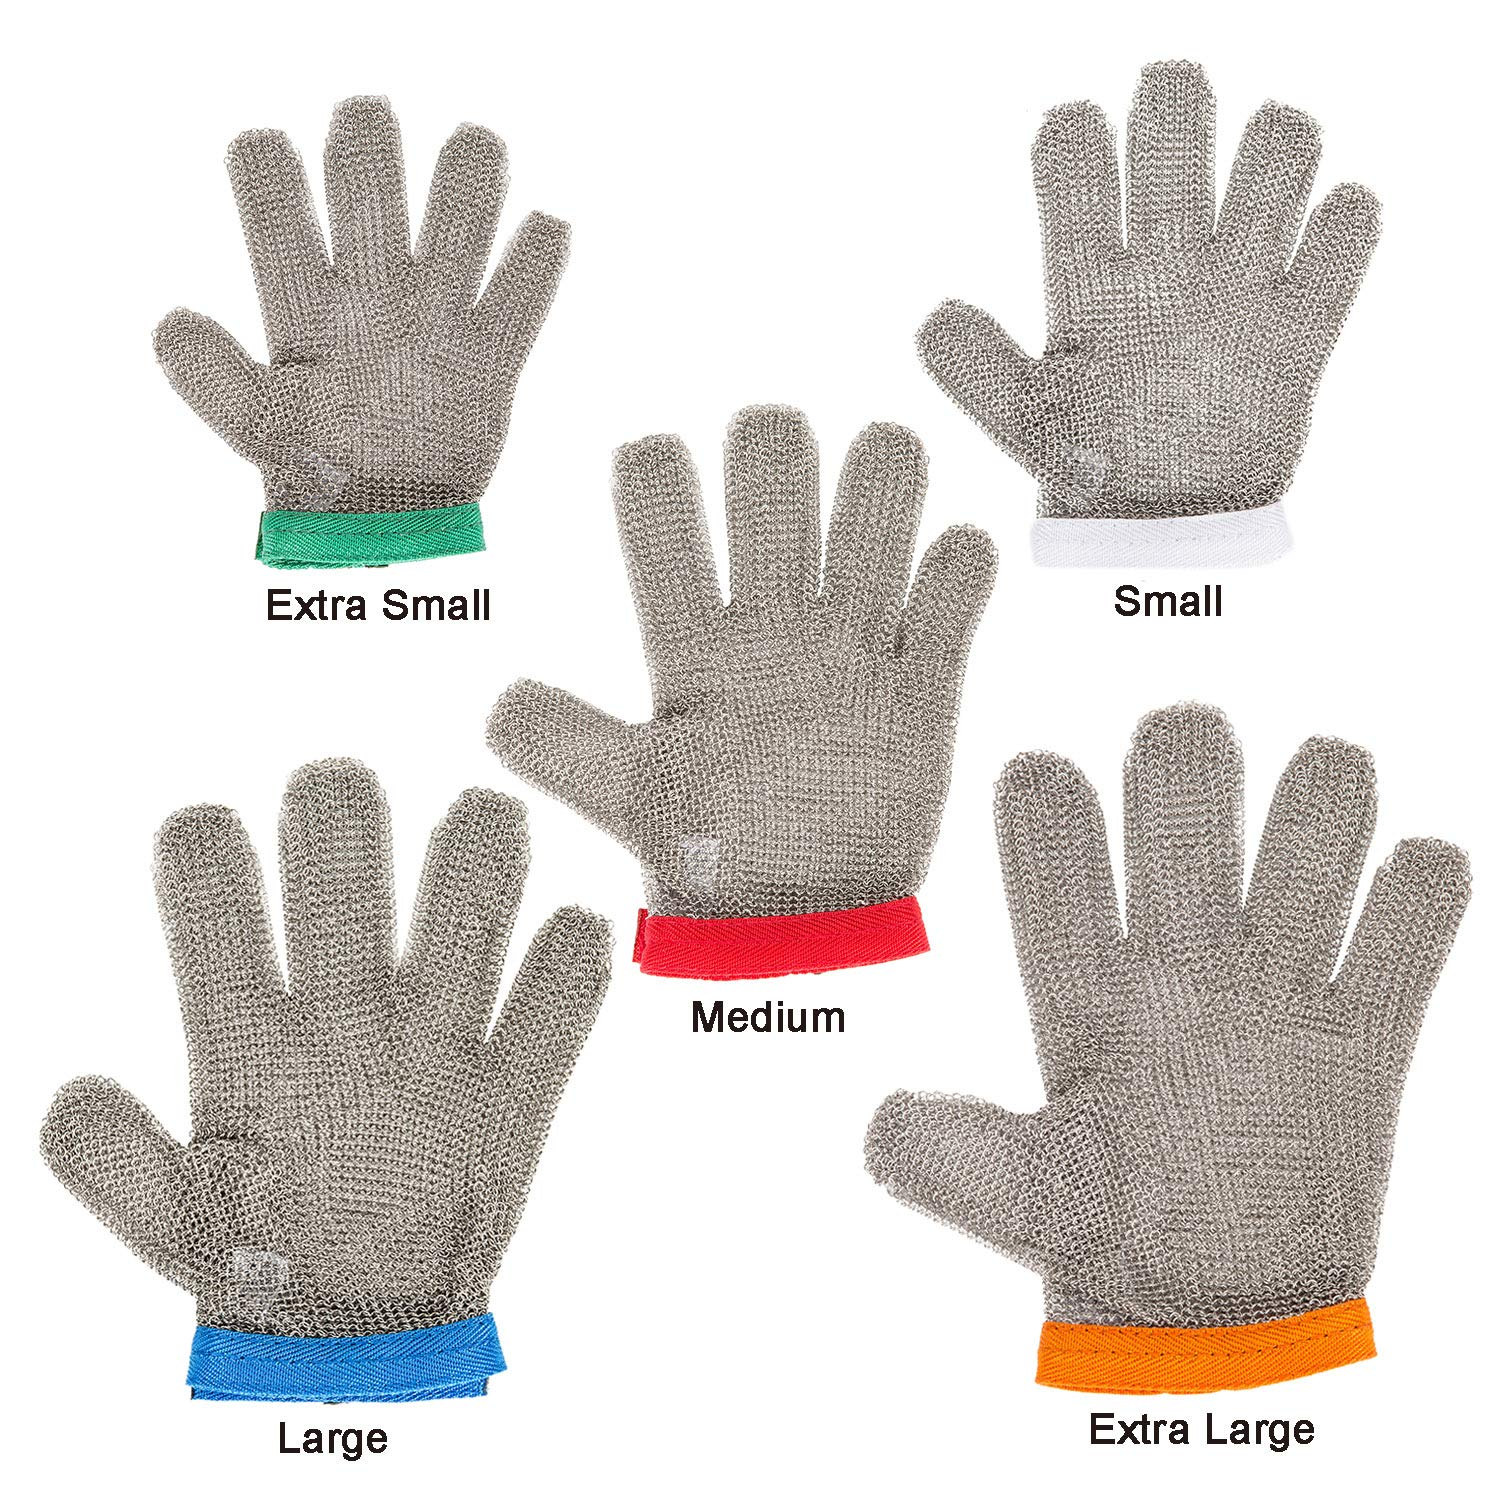 Stainless Steel Mesh Cut-resistant Glove - Chain Mail Glove for Hand Protective, Safety Glove for Home Kitchen, Butcher, Oyster, Garment. Fish Worker (Large) by HANDSAFETY (Image #5)